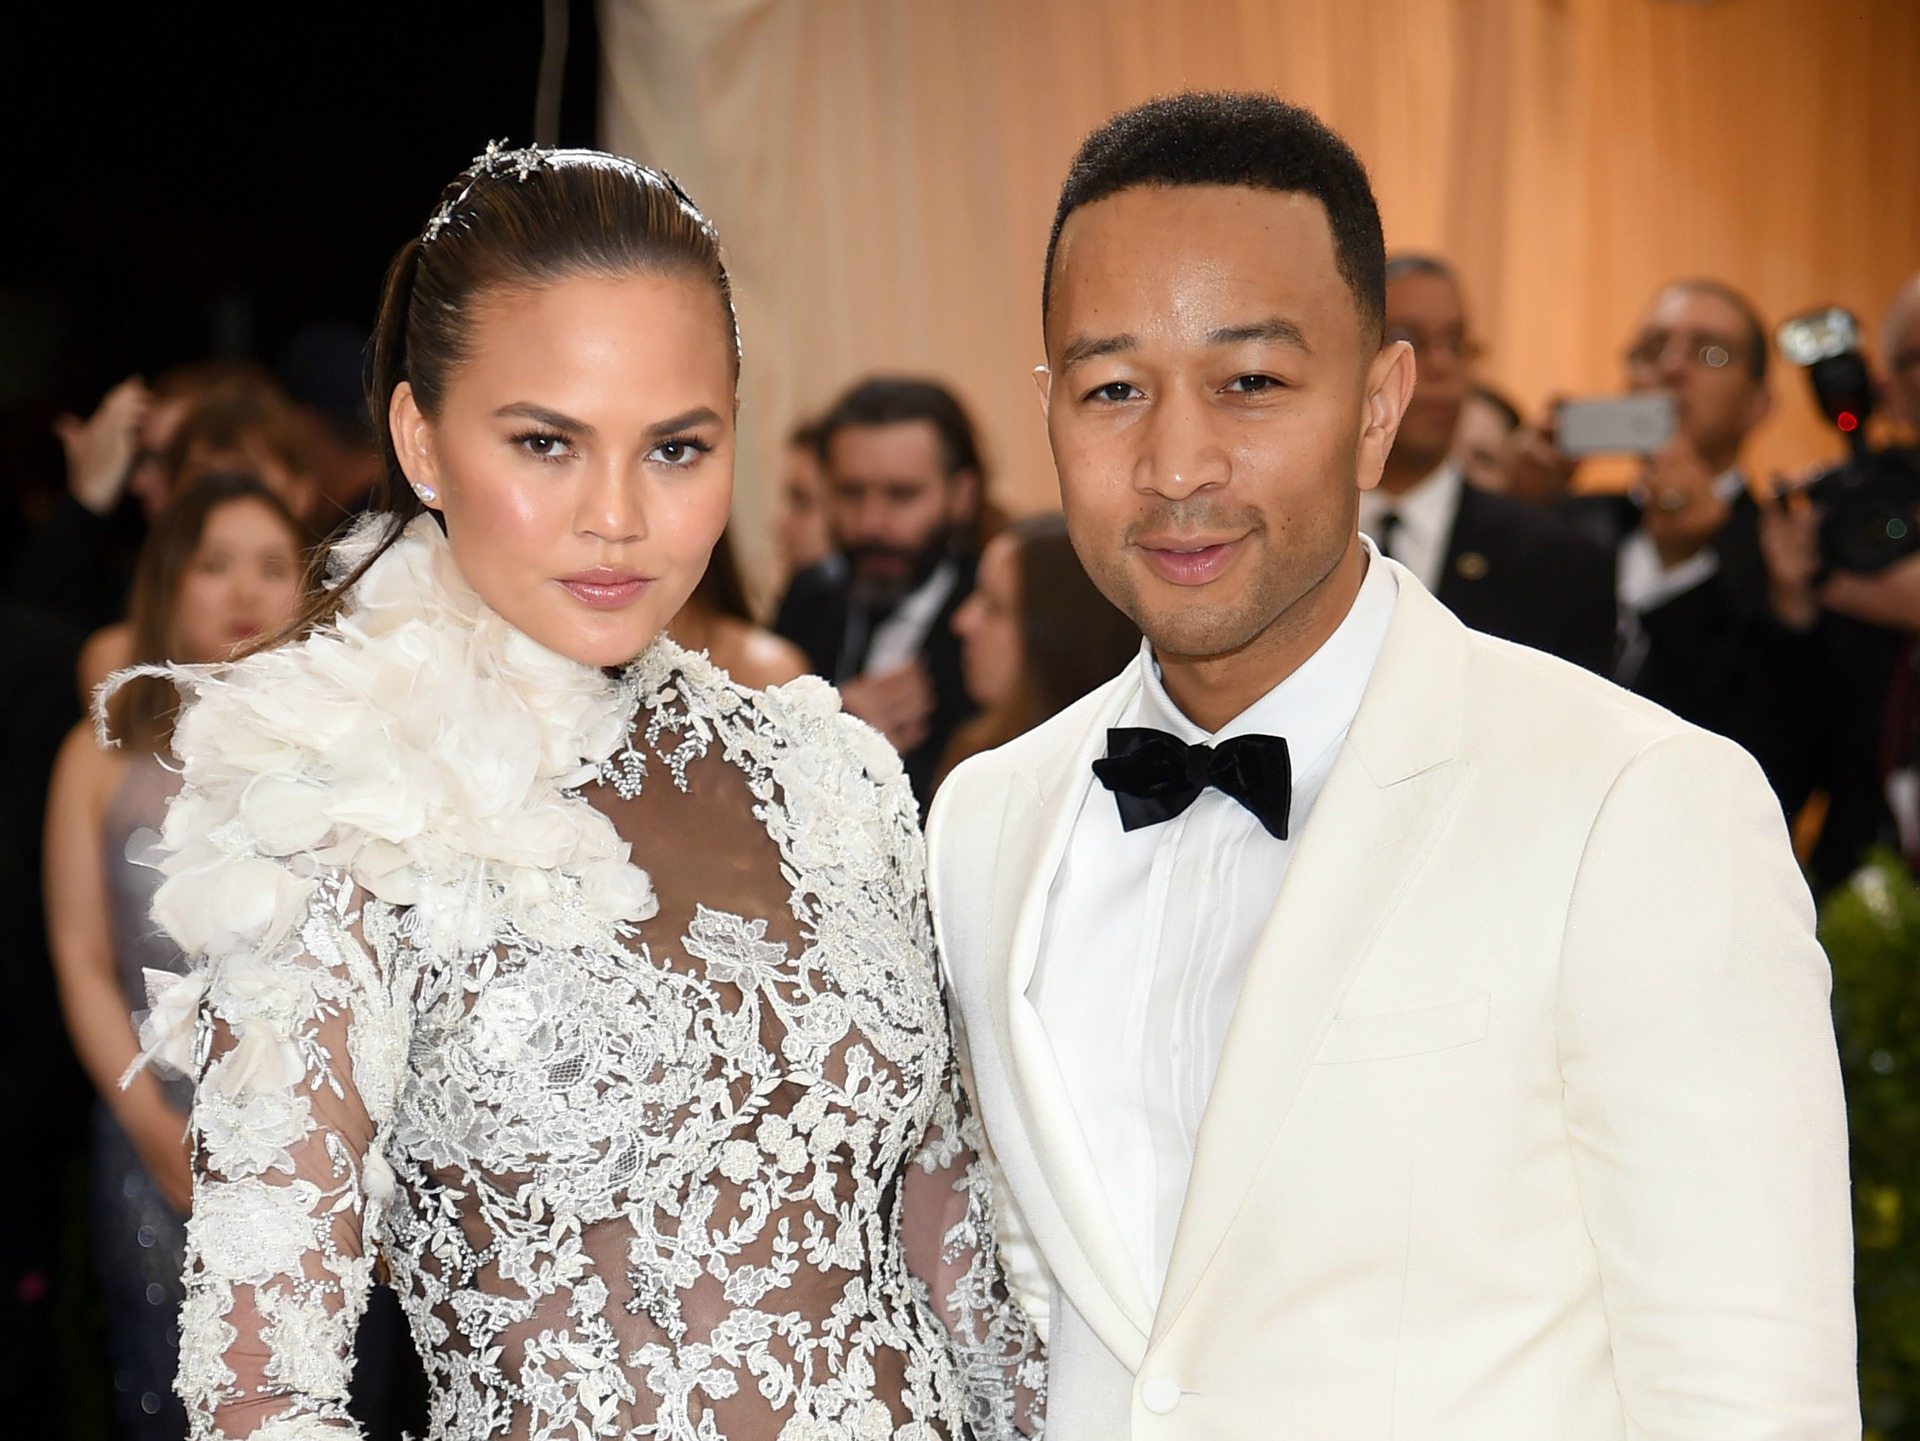 No more: Chrissy Teigen wants Twitterverse to stop sending